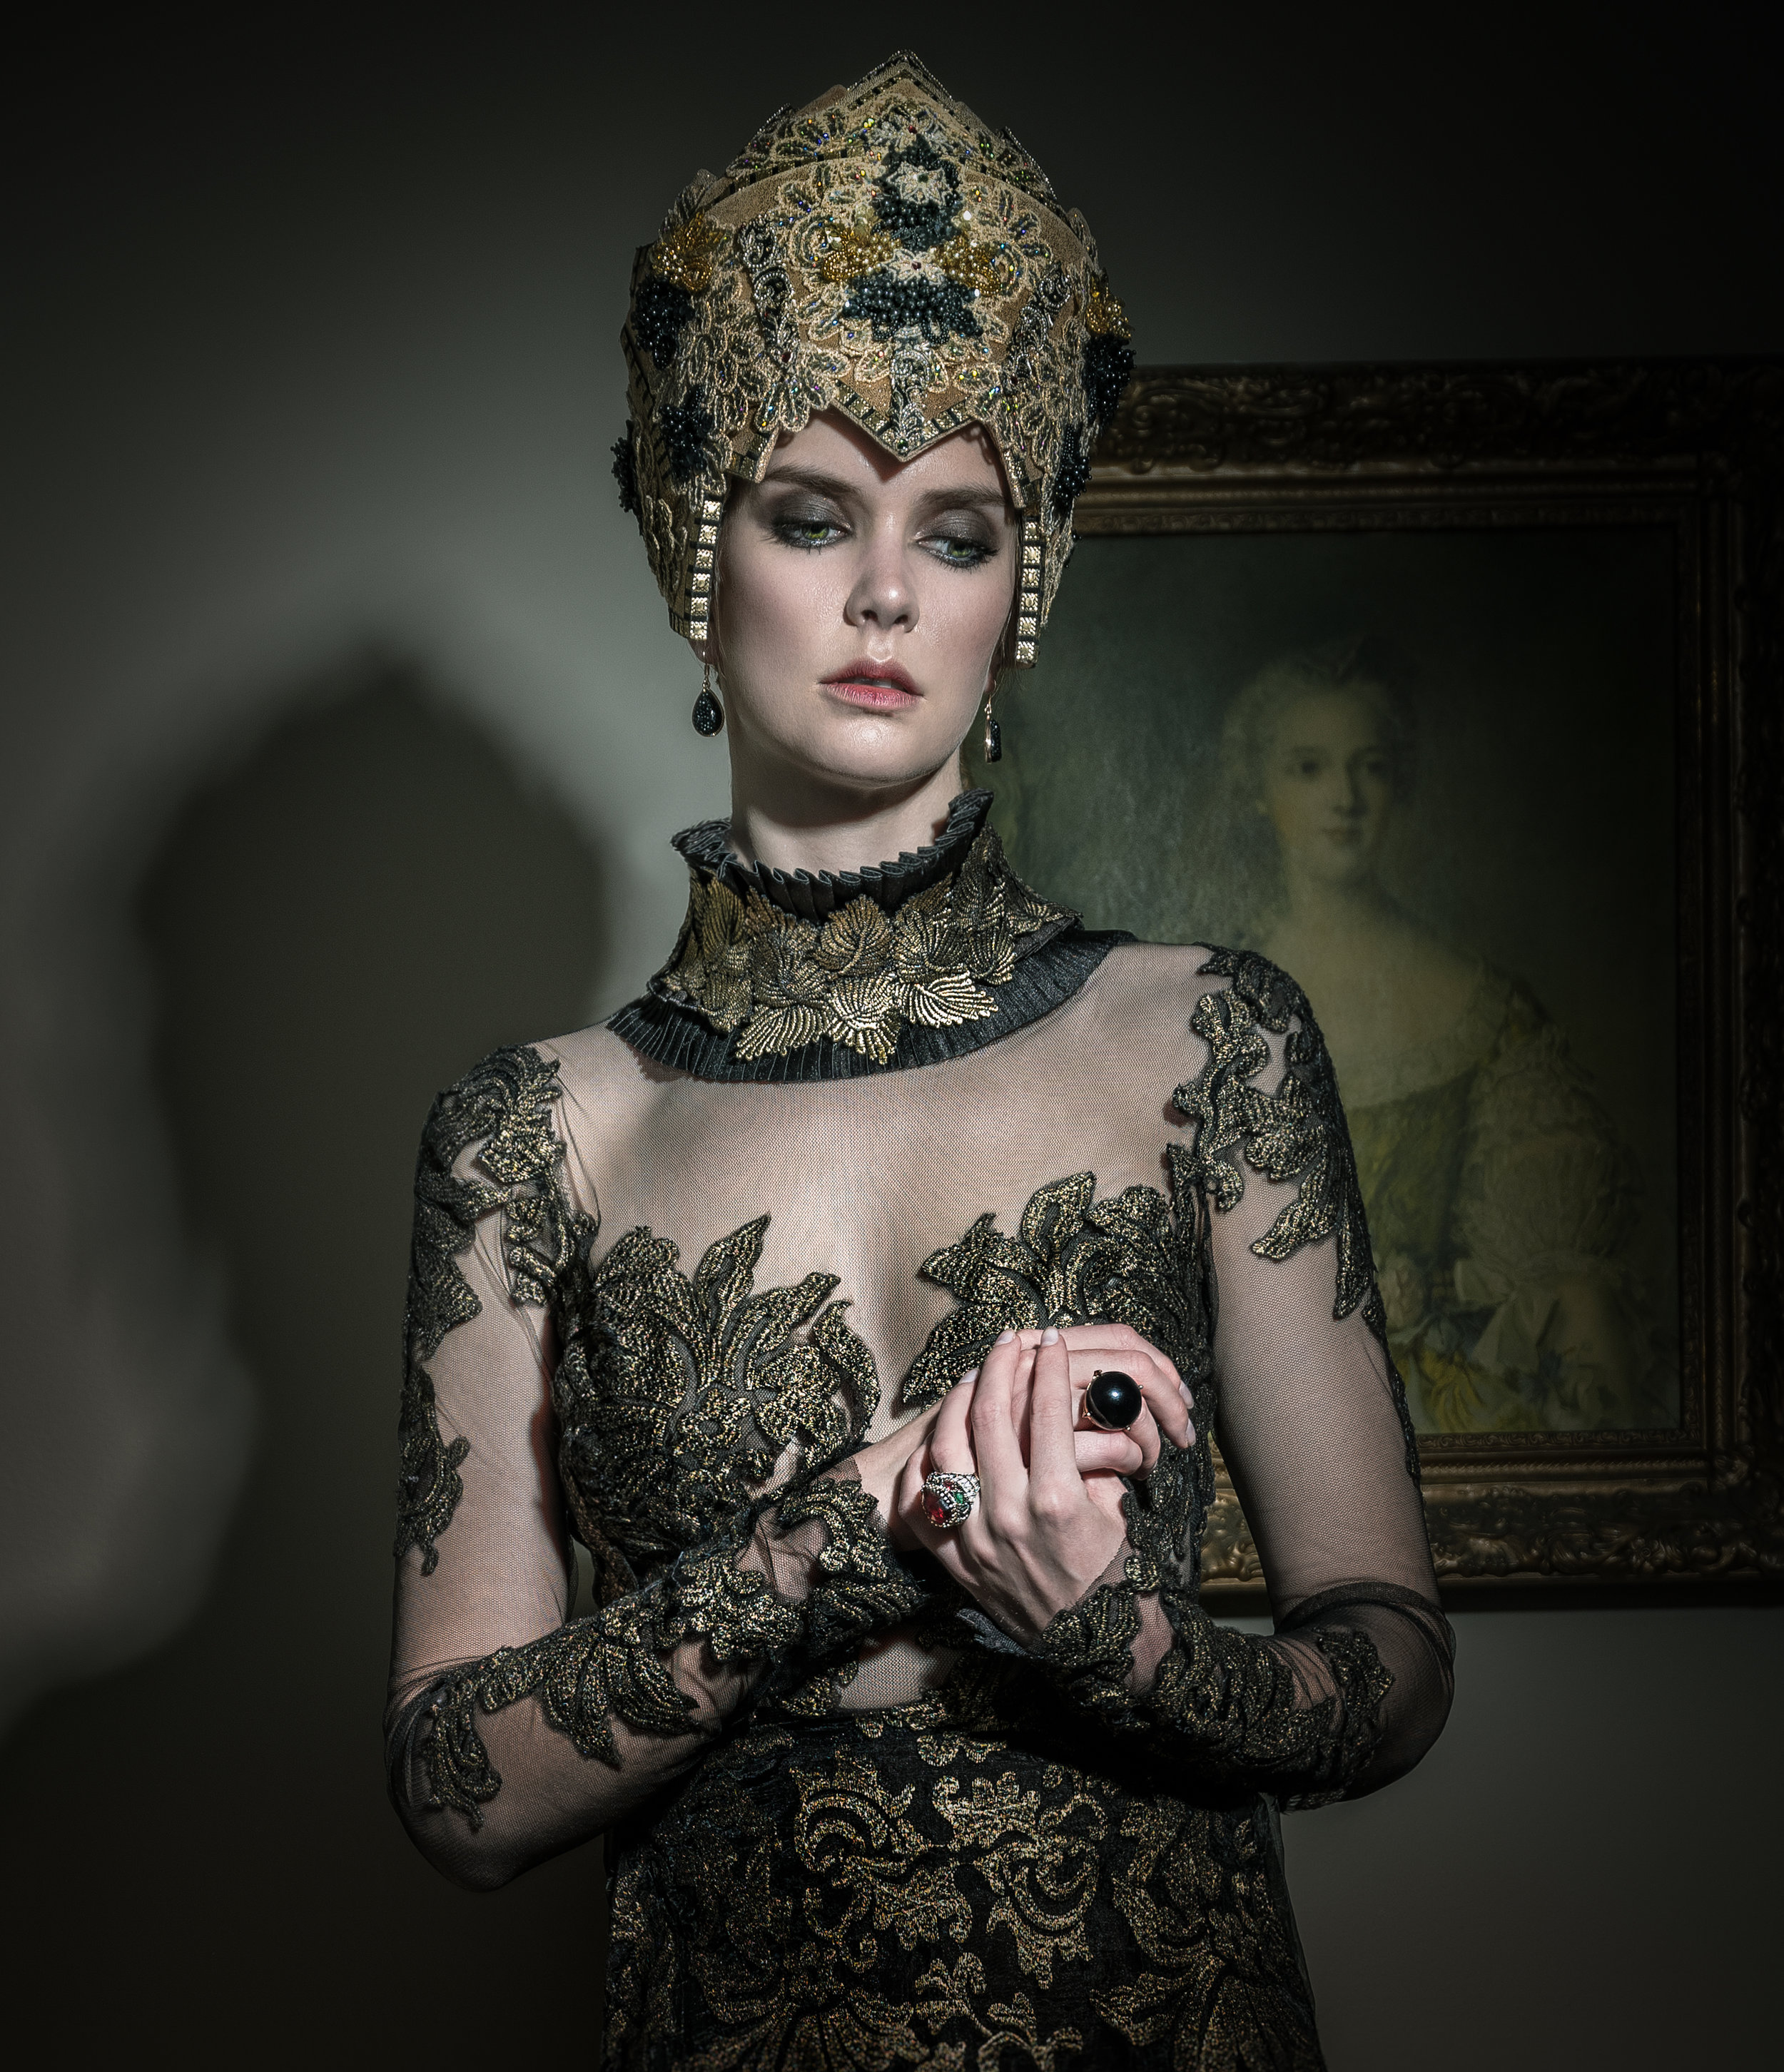 gown: Narces headpiece and choker: Marie Copps jewellery: Penwarden